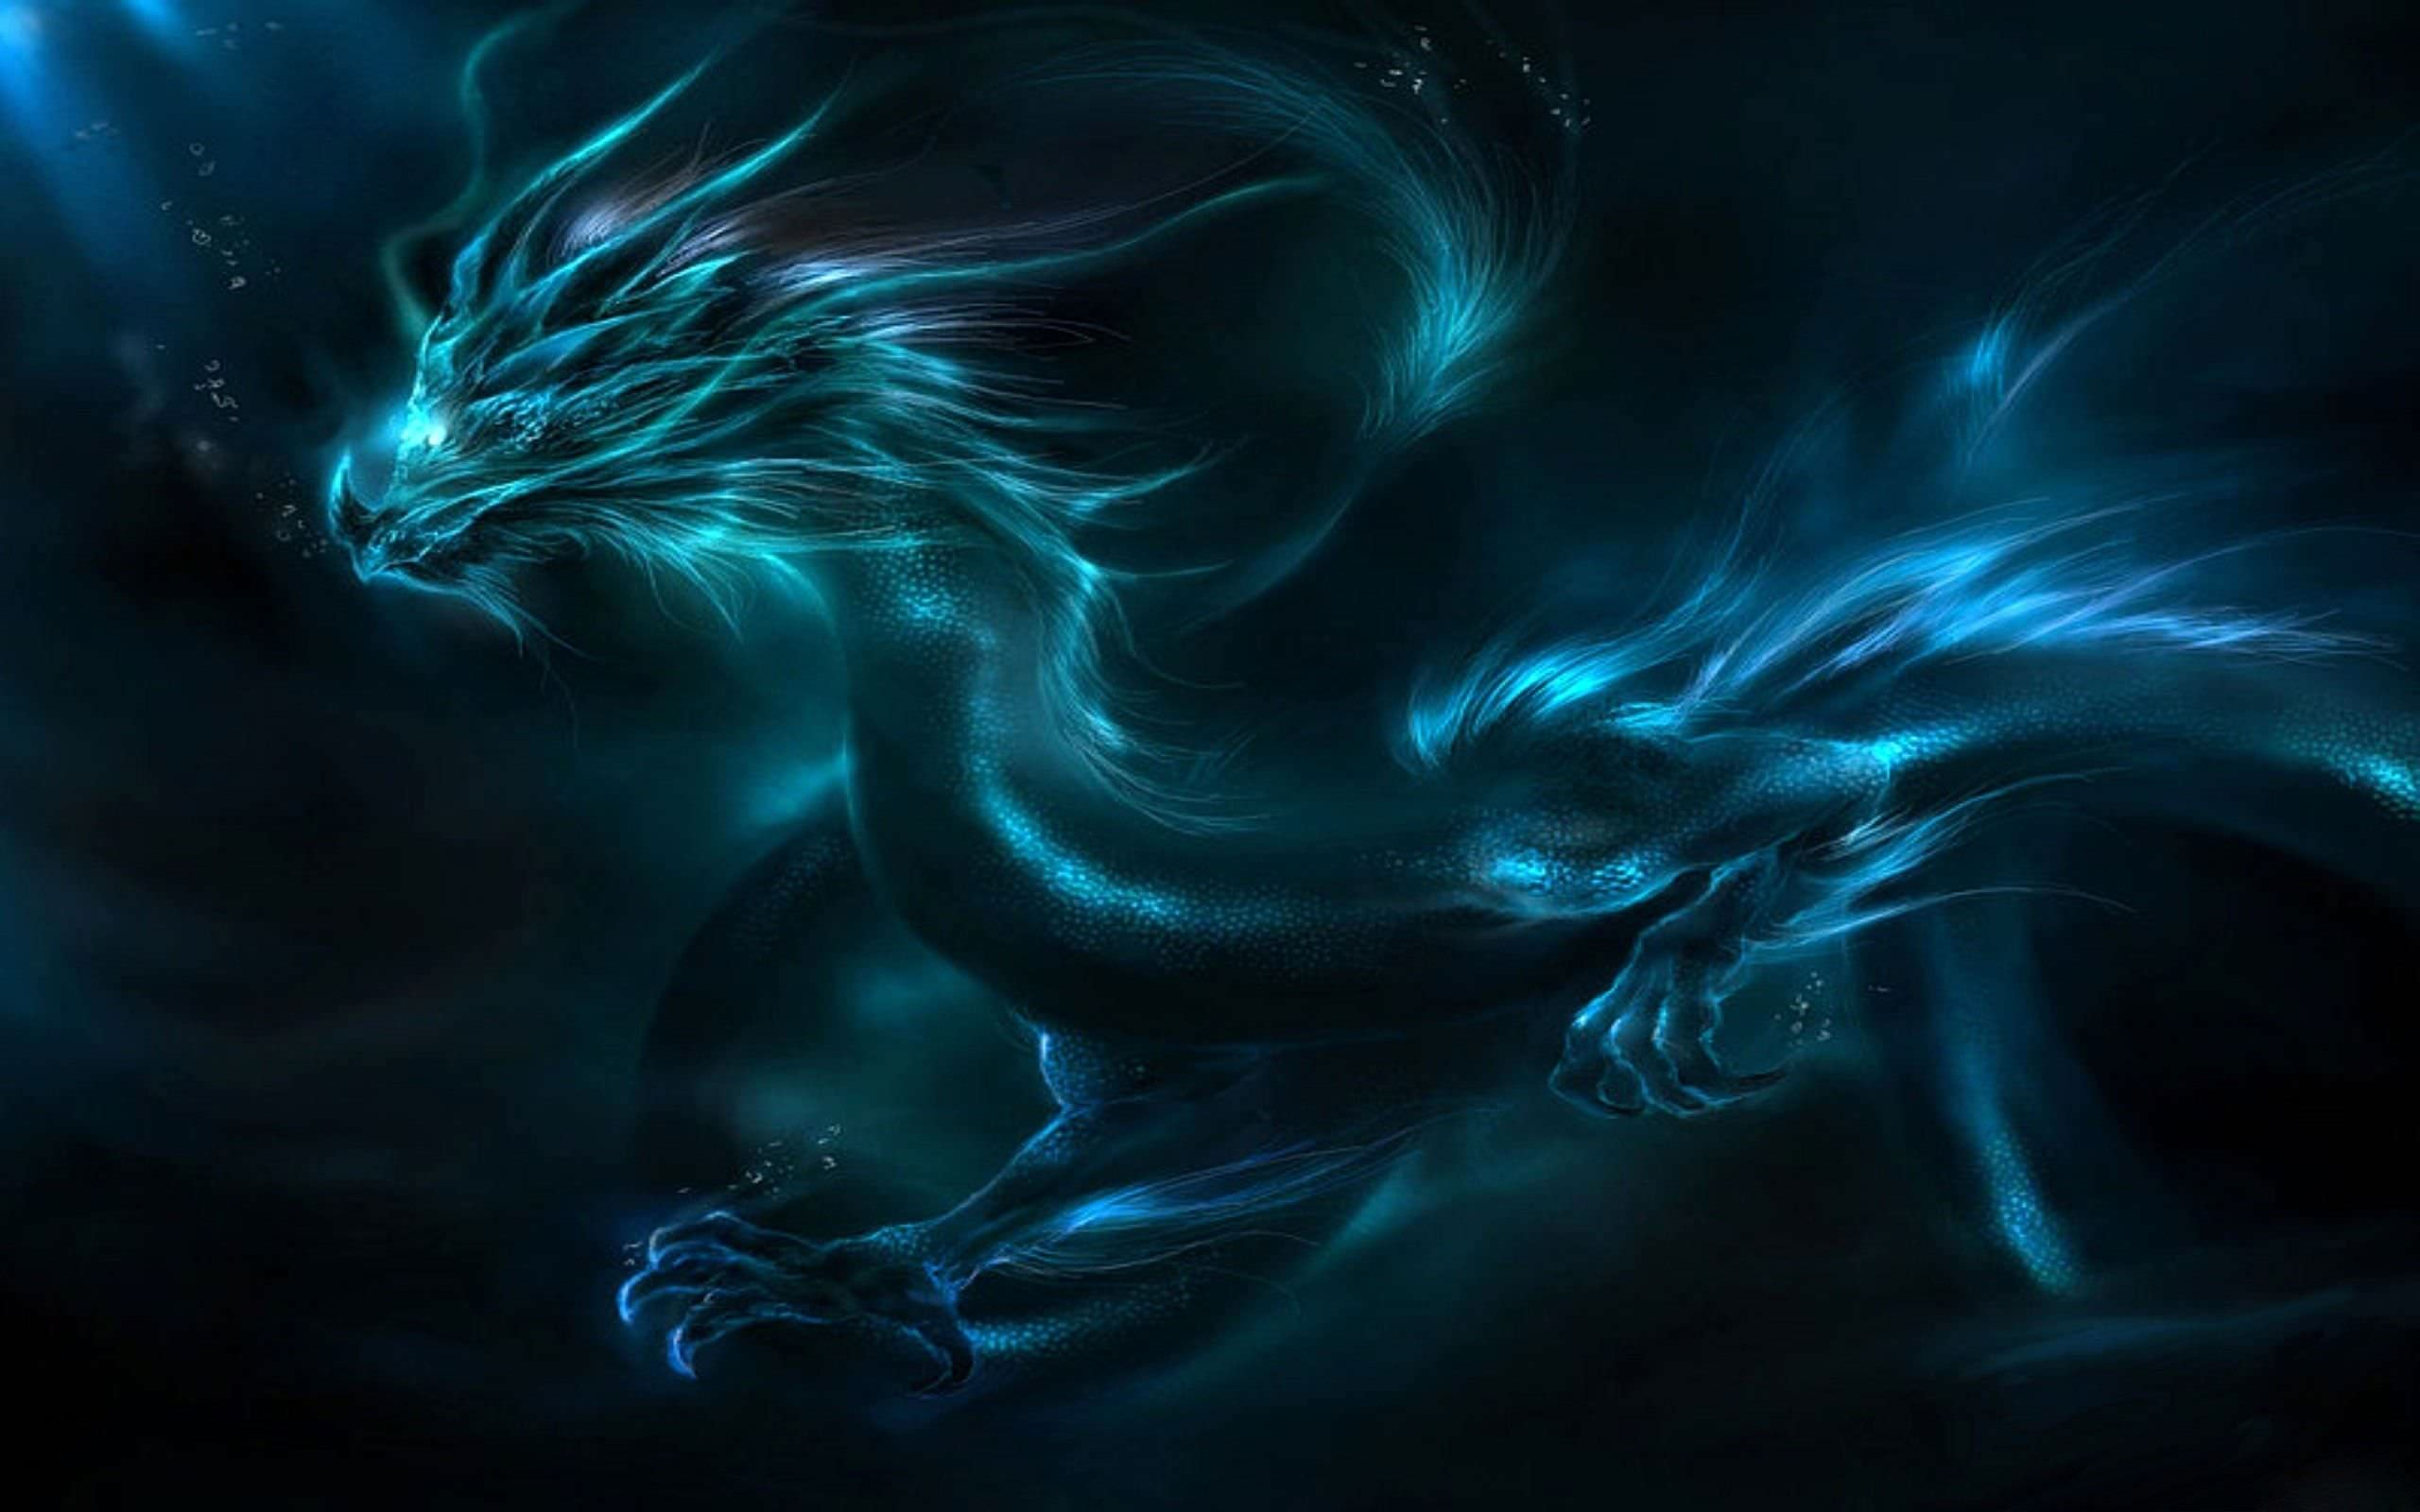 Fabulous Dragon 3D Wallpaper Design